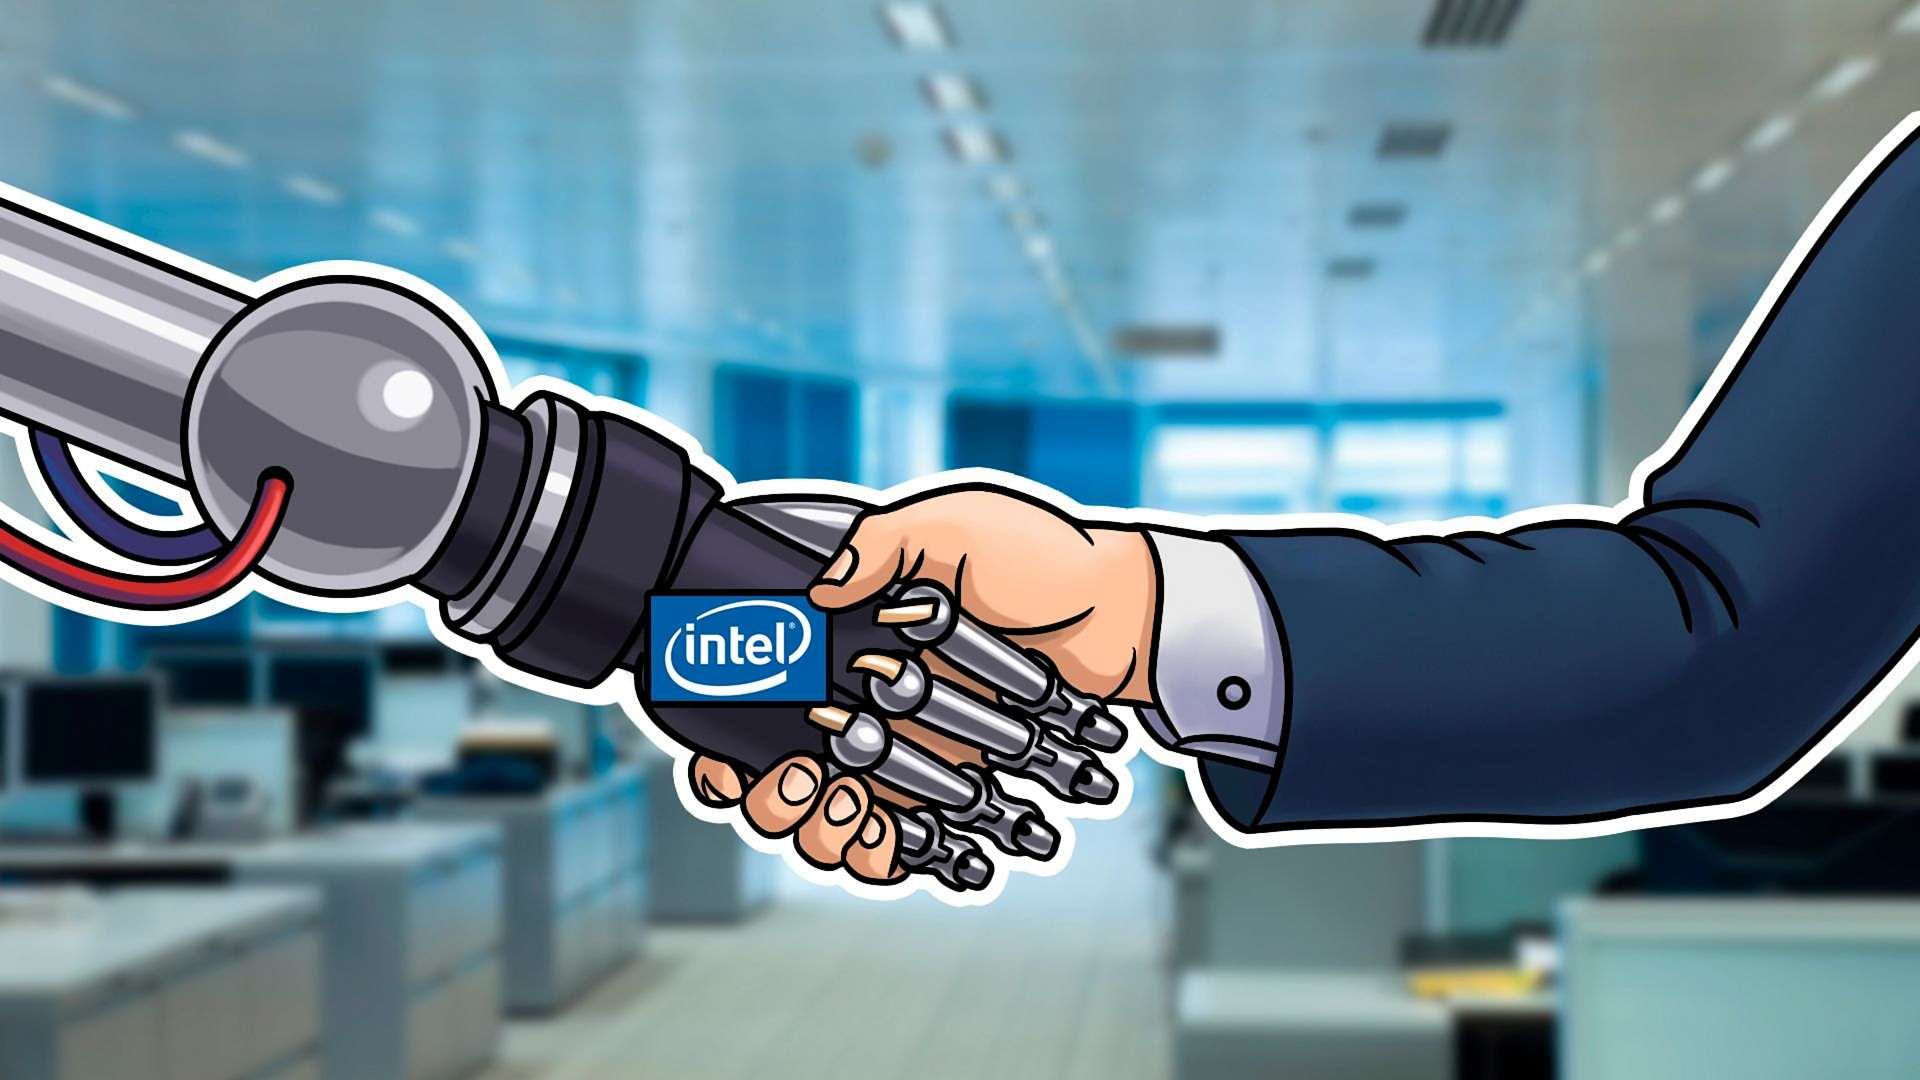 Intel presented fresh research and solutions for smart factory